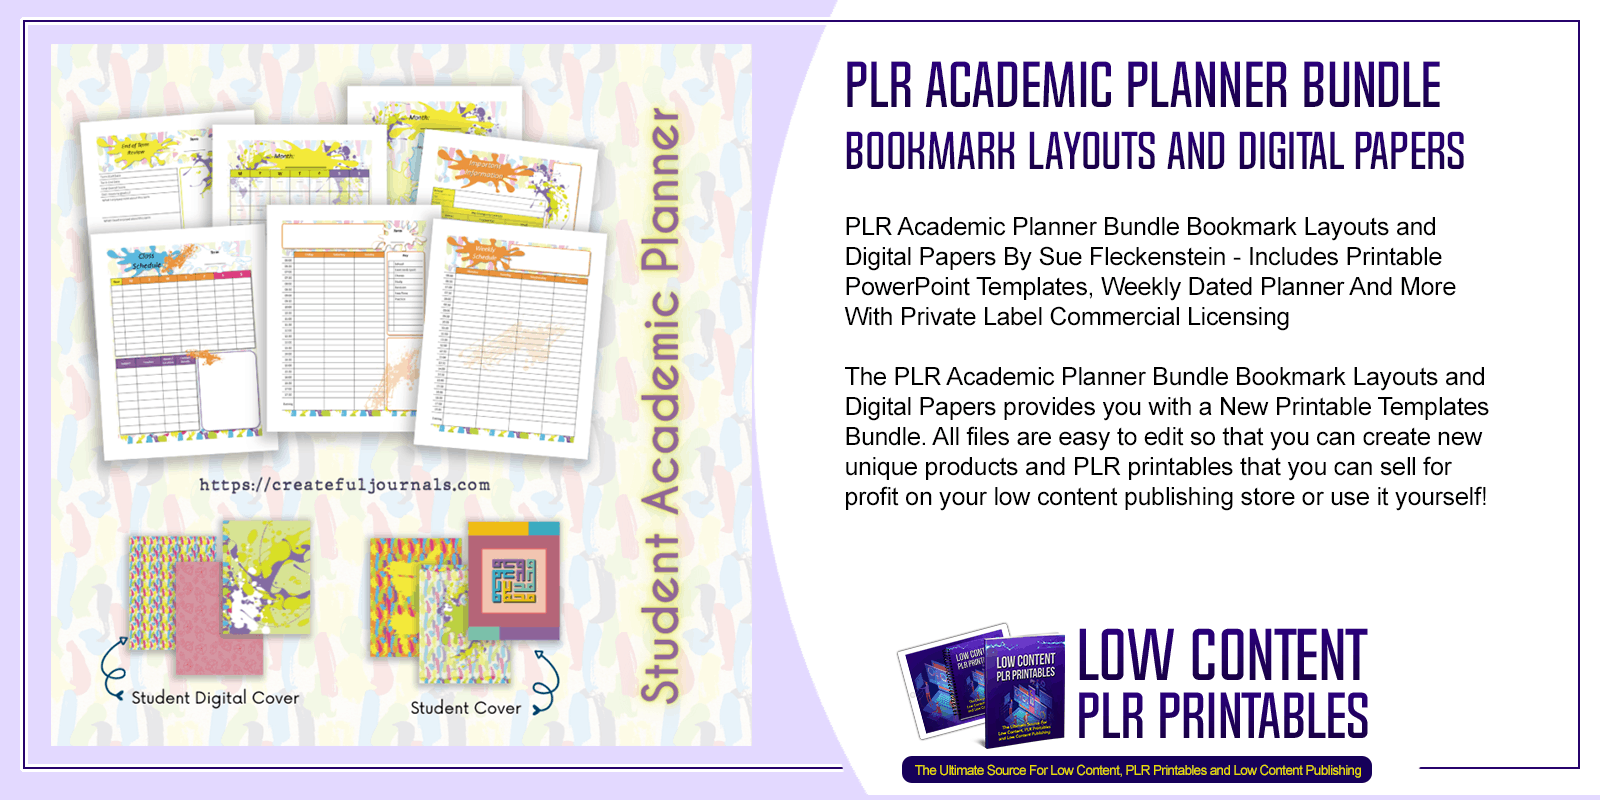 PLR Academic Planner Bundle Bookmark Layouts and Digital Papers